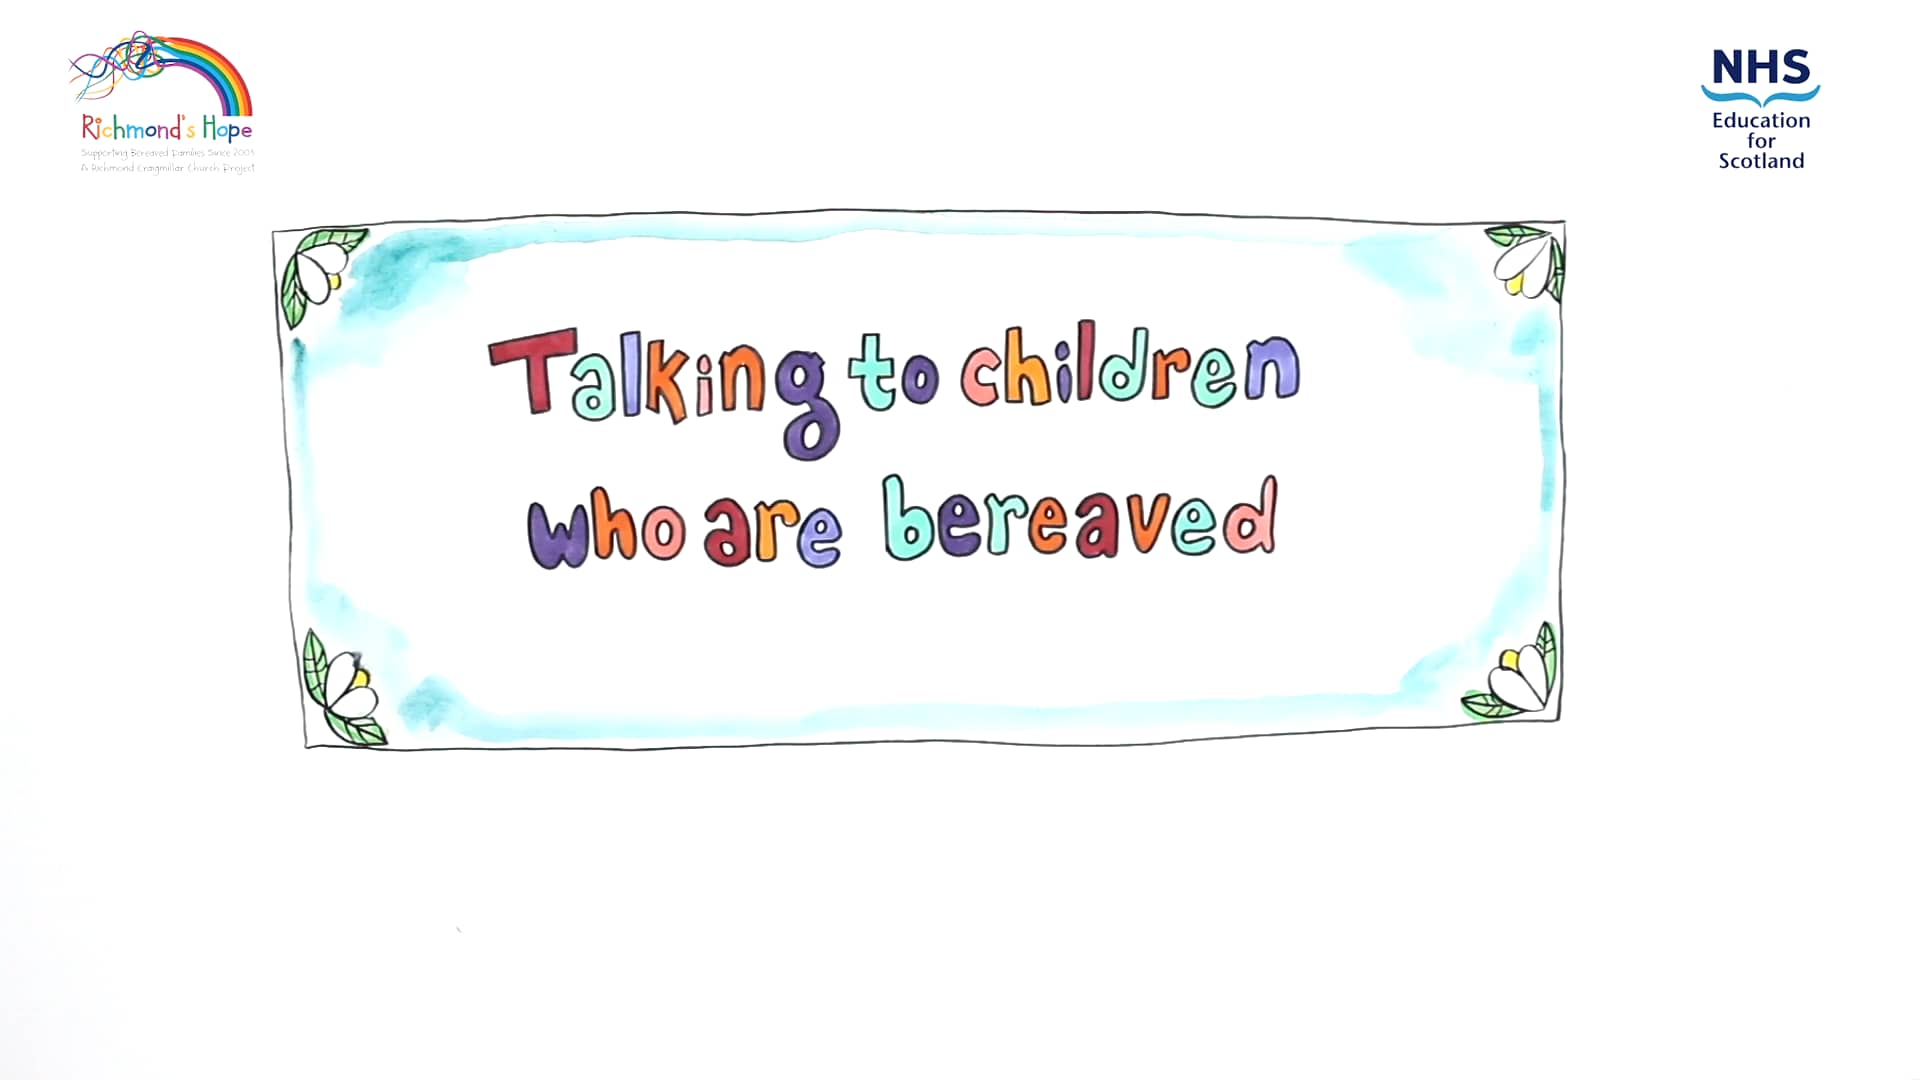 Talking to children who are bereaved